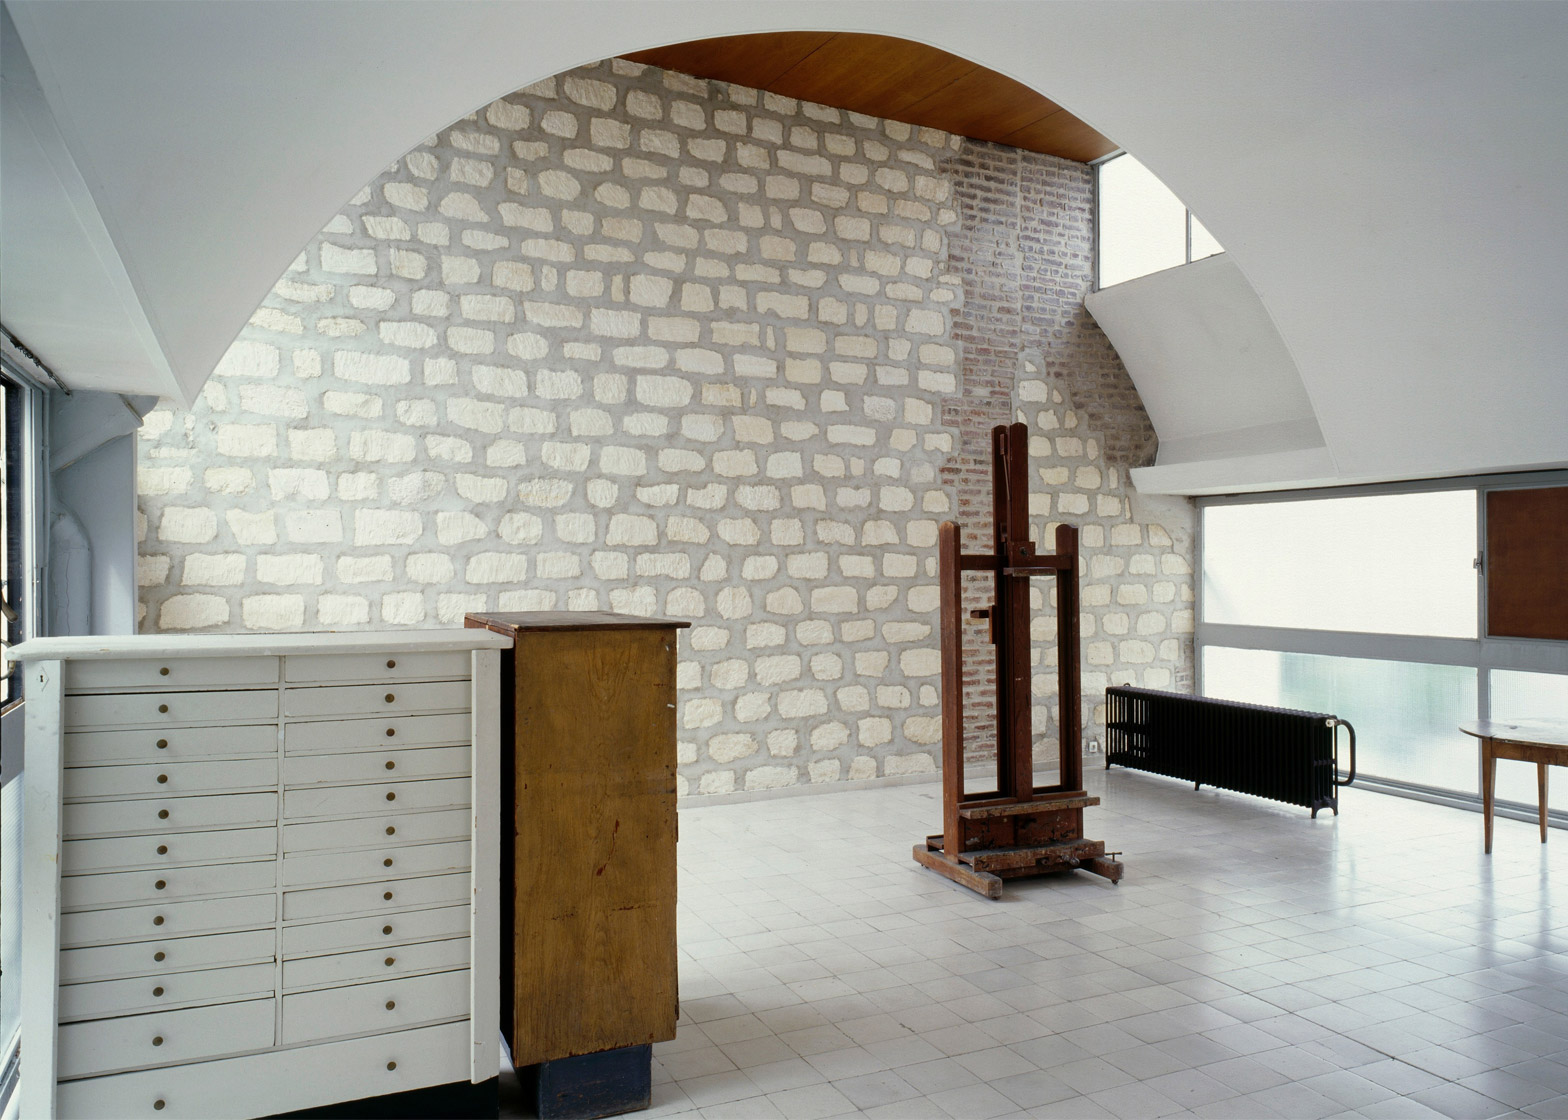 Immeuble locatif à la porte Molitor, Paris, France, 1931 - 1934. Photograph by Oliver Martin-Gambier